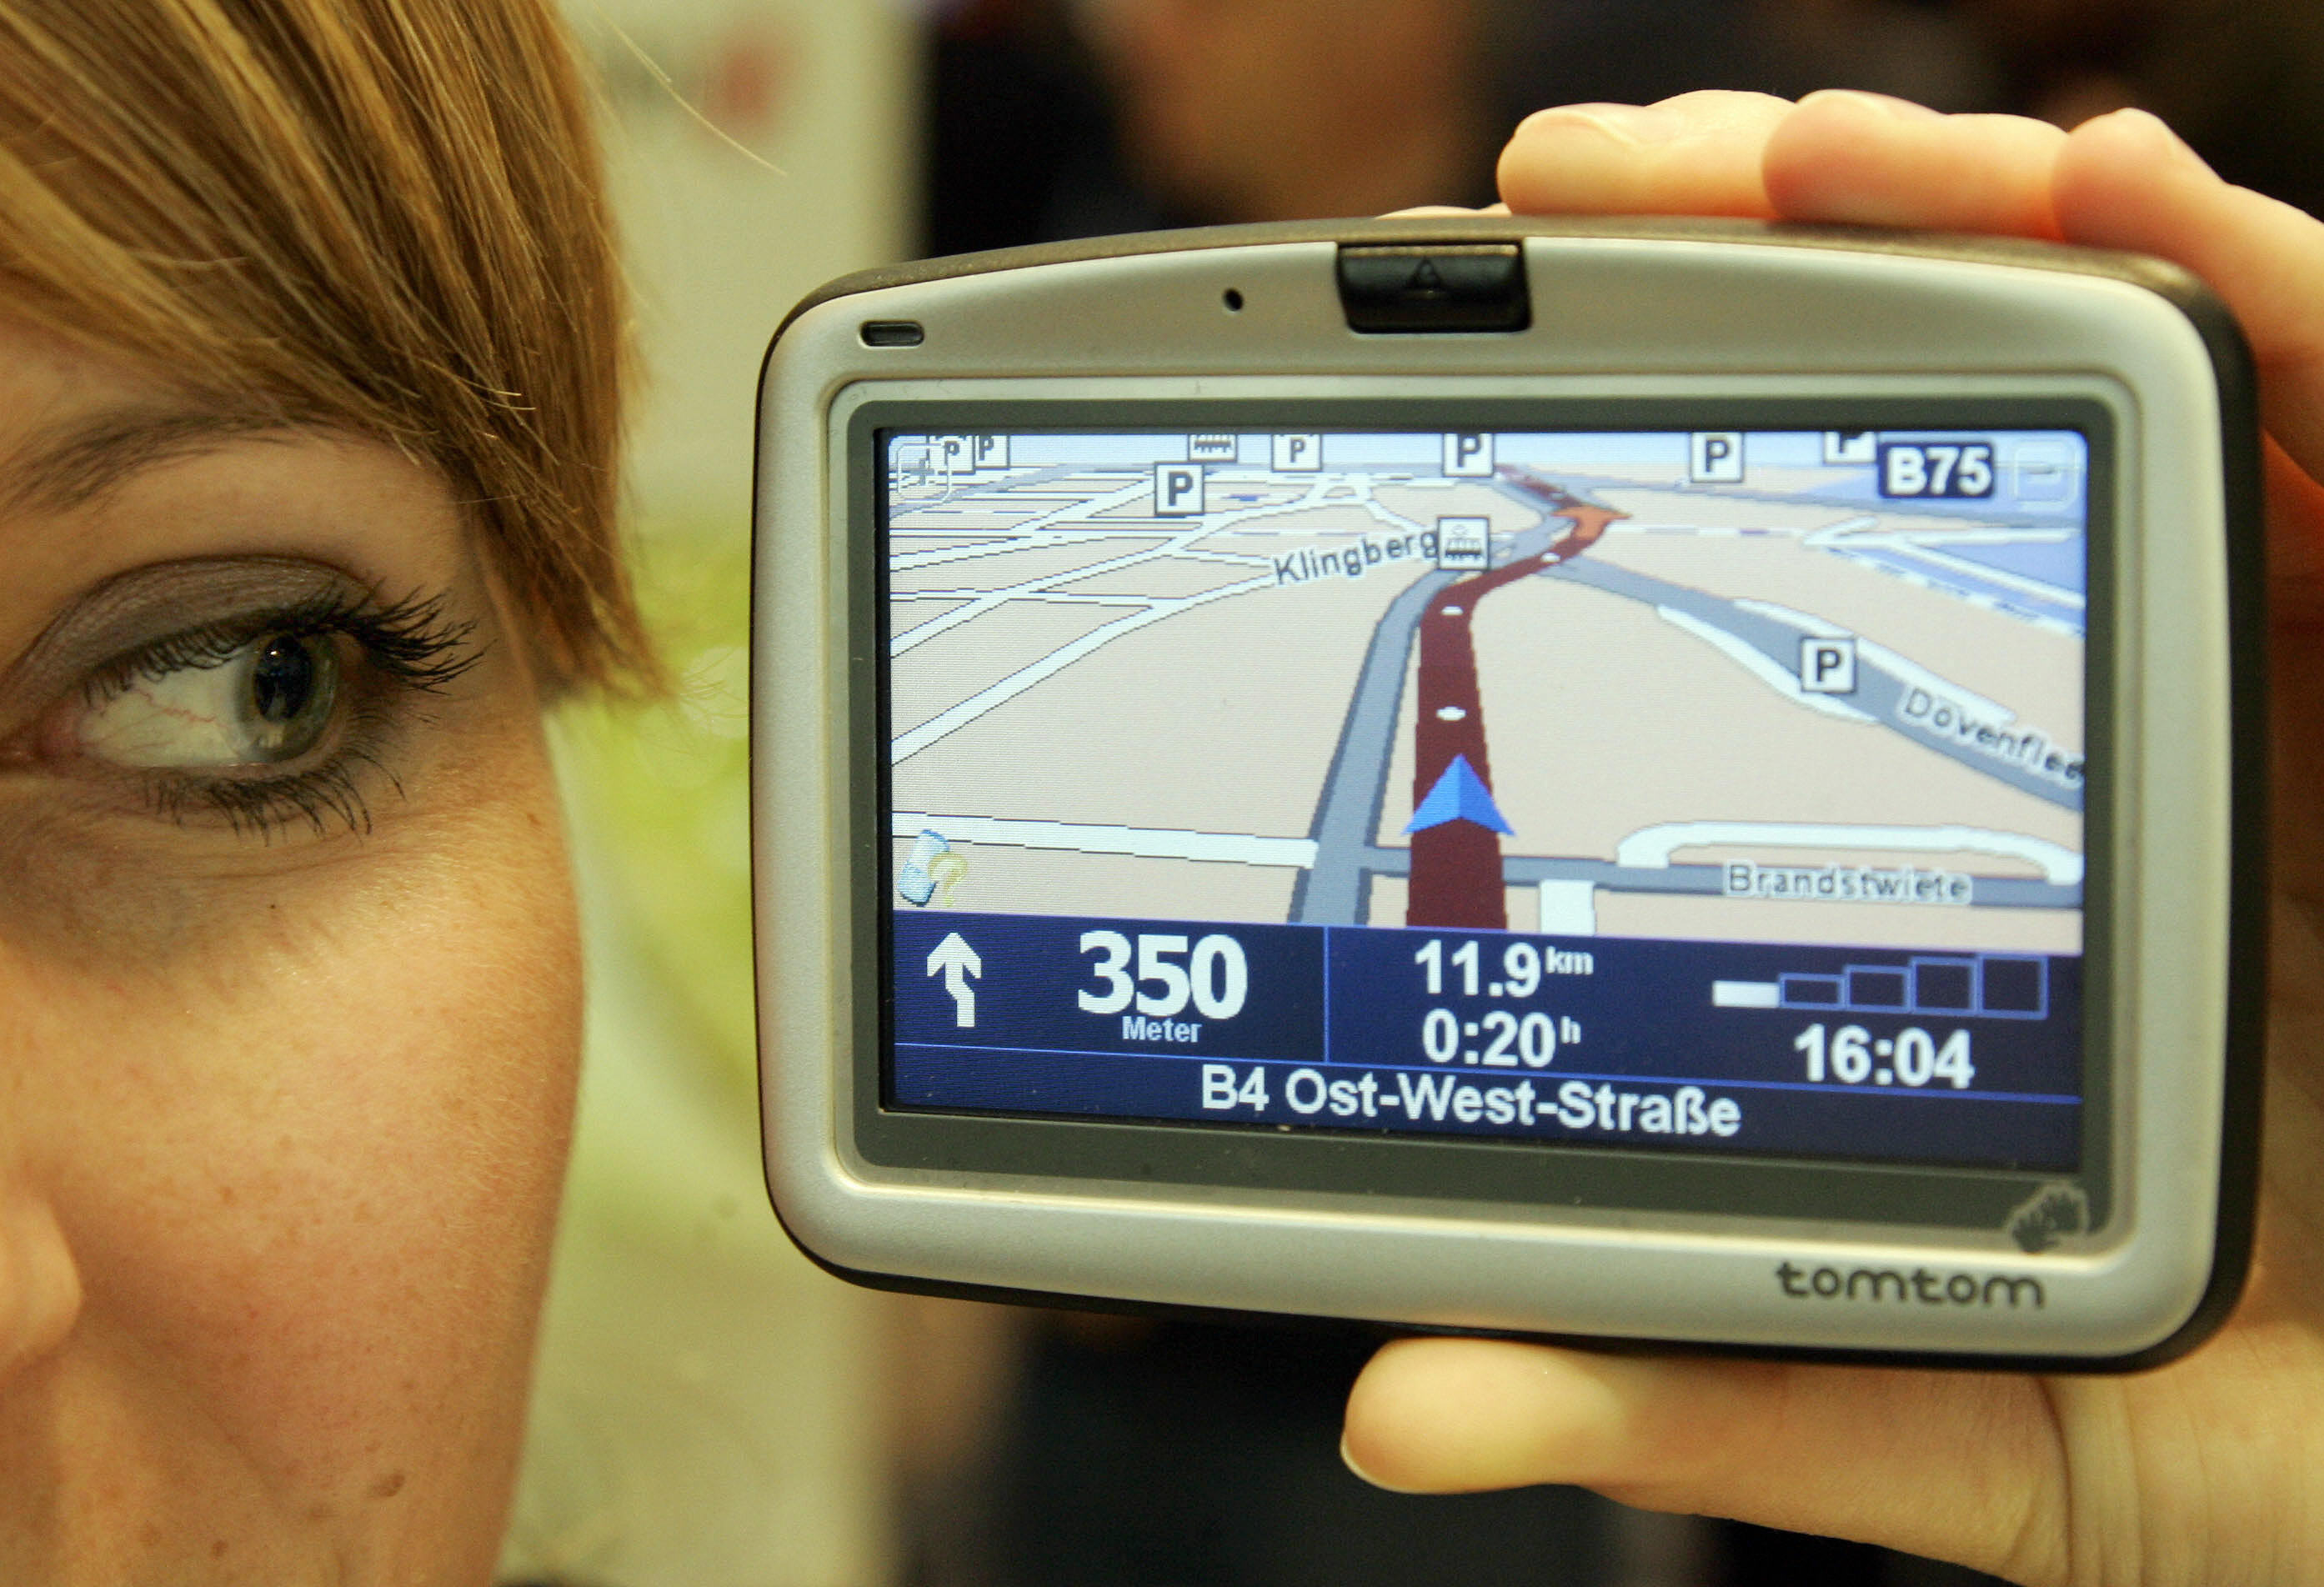 TomTom launches new navigation apps on Google Play, limits installation to some (older) devices